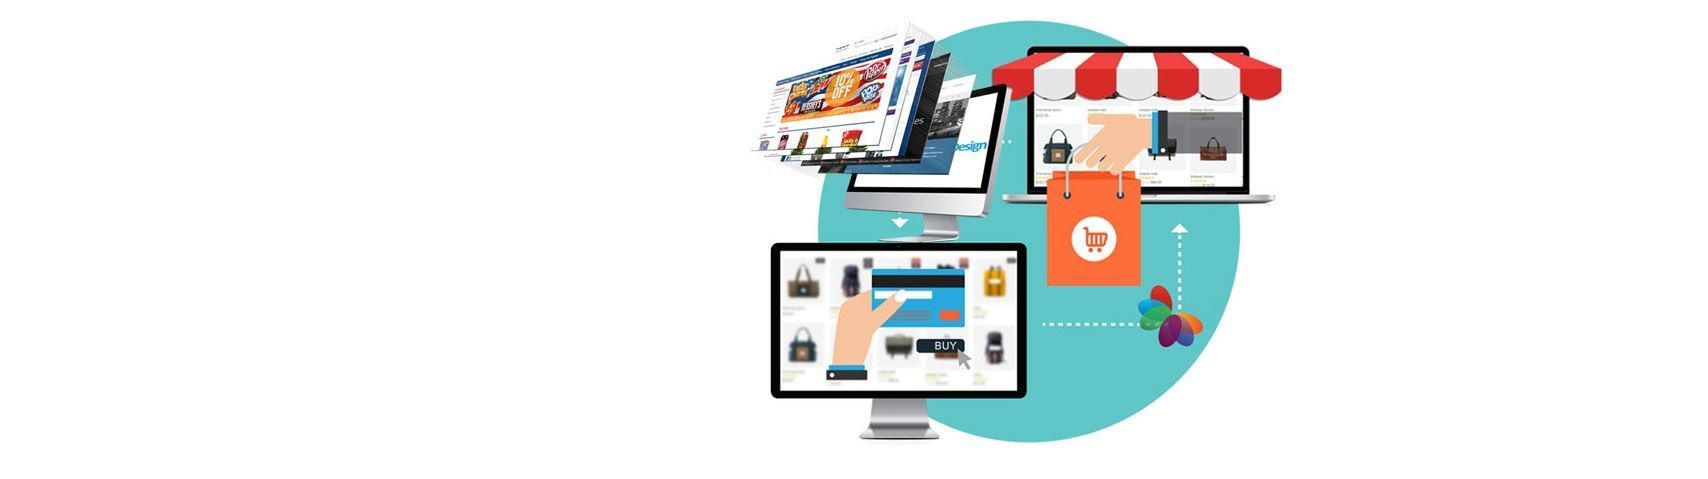 Ecommerce Web Designing and Development Services